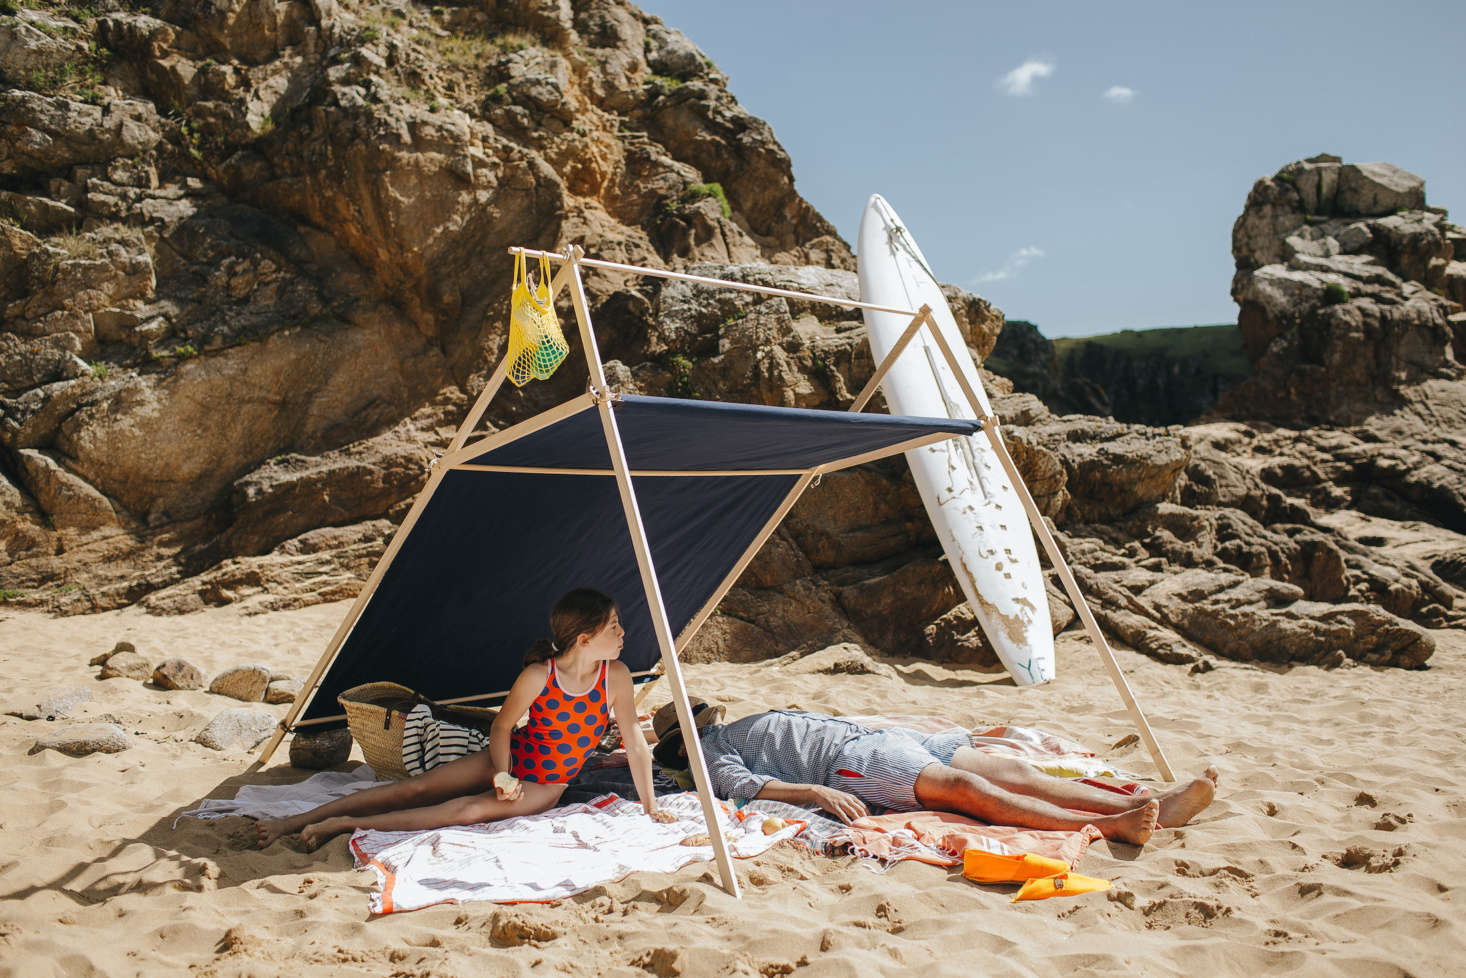 There are four styles of tents available, each named for a French island. Here, the Belle-Île, which is available in three sizes up to the medium size shown here;€359.